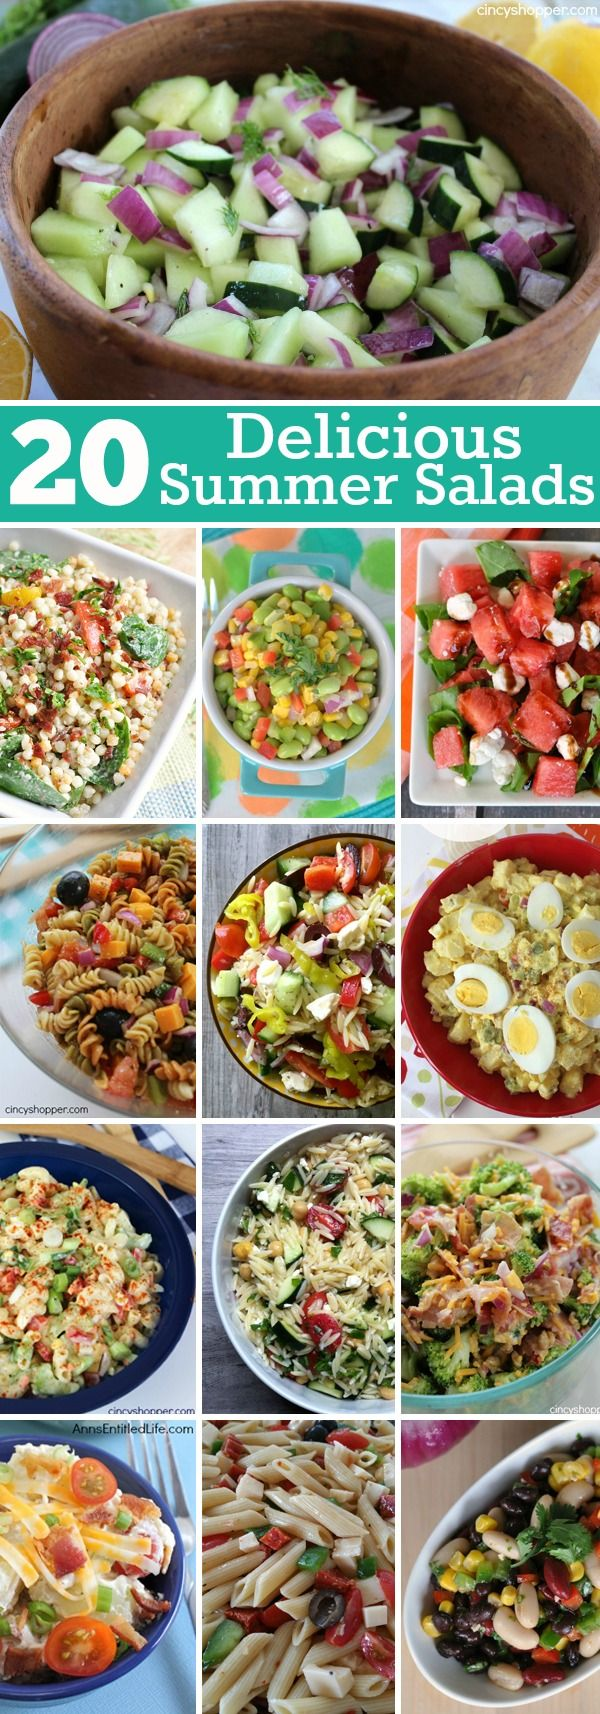 20 Delicious Summer Salads for your picnics, bbqs and parties. Pasta, Macaroni, Potato and more!